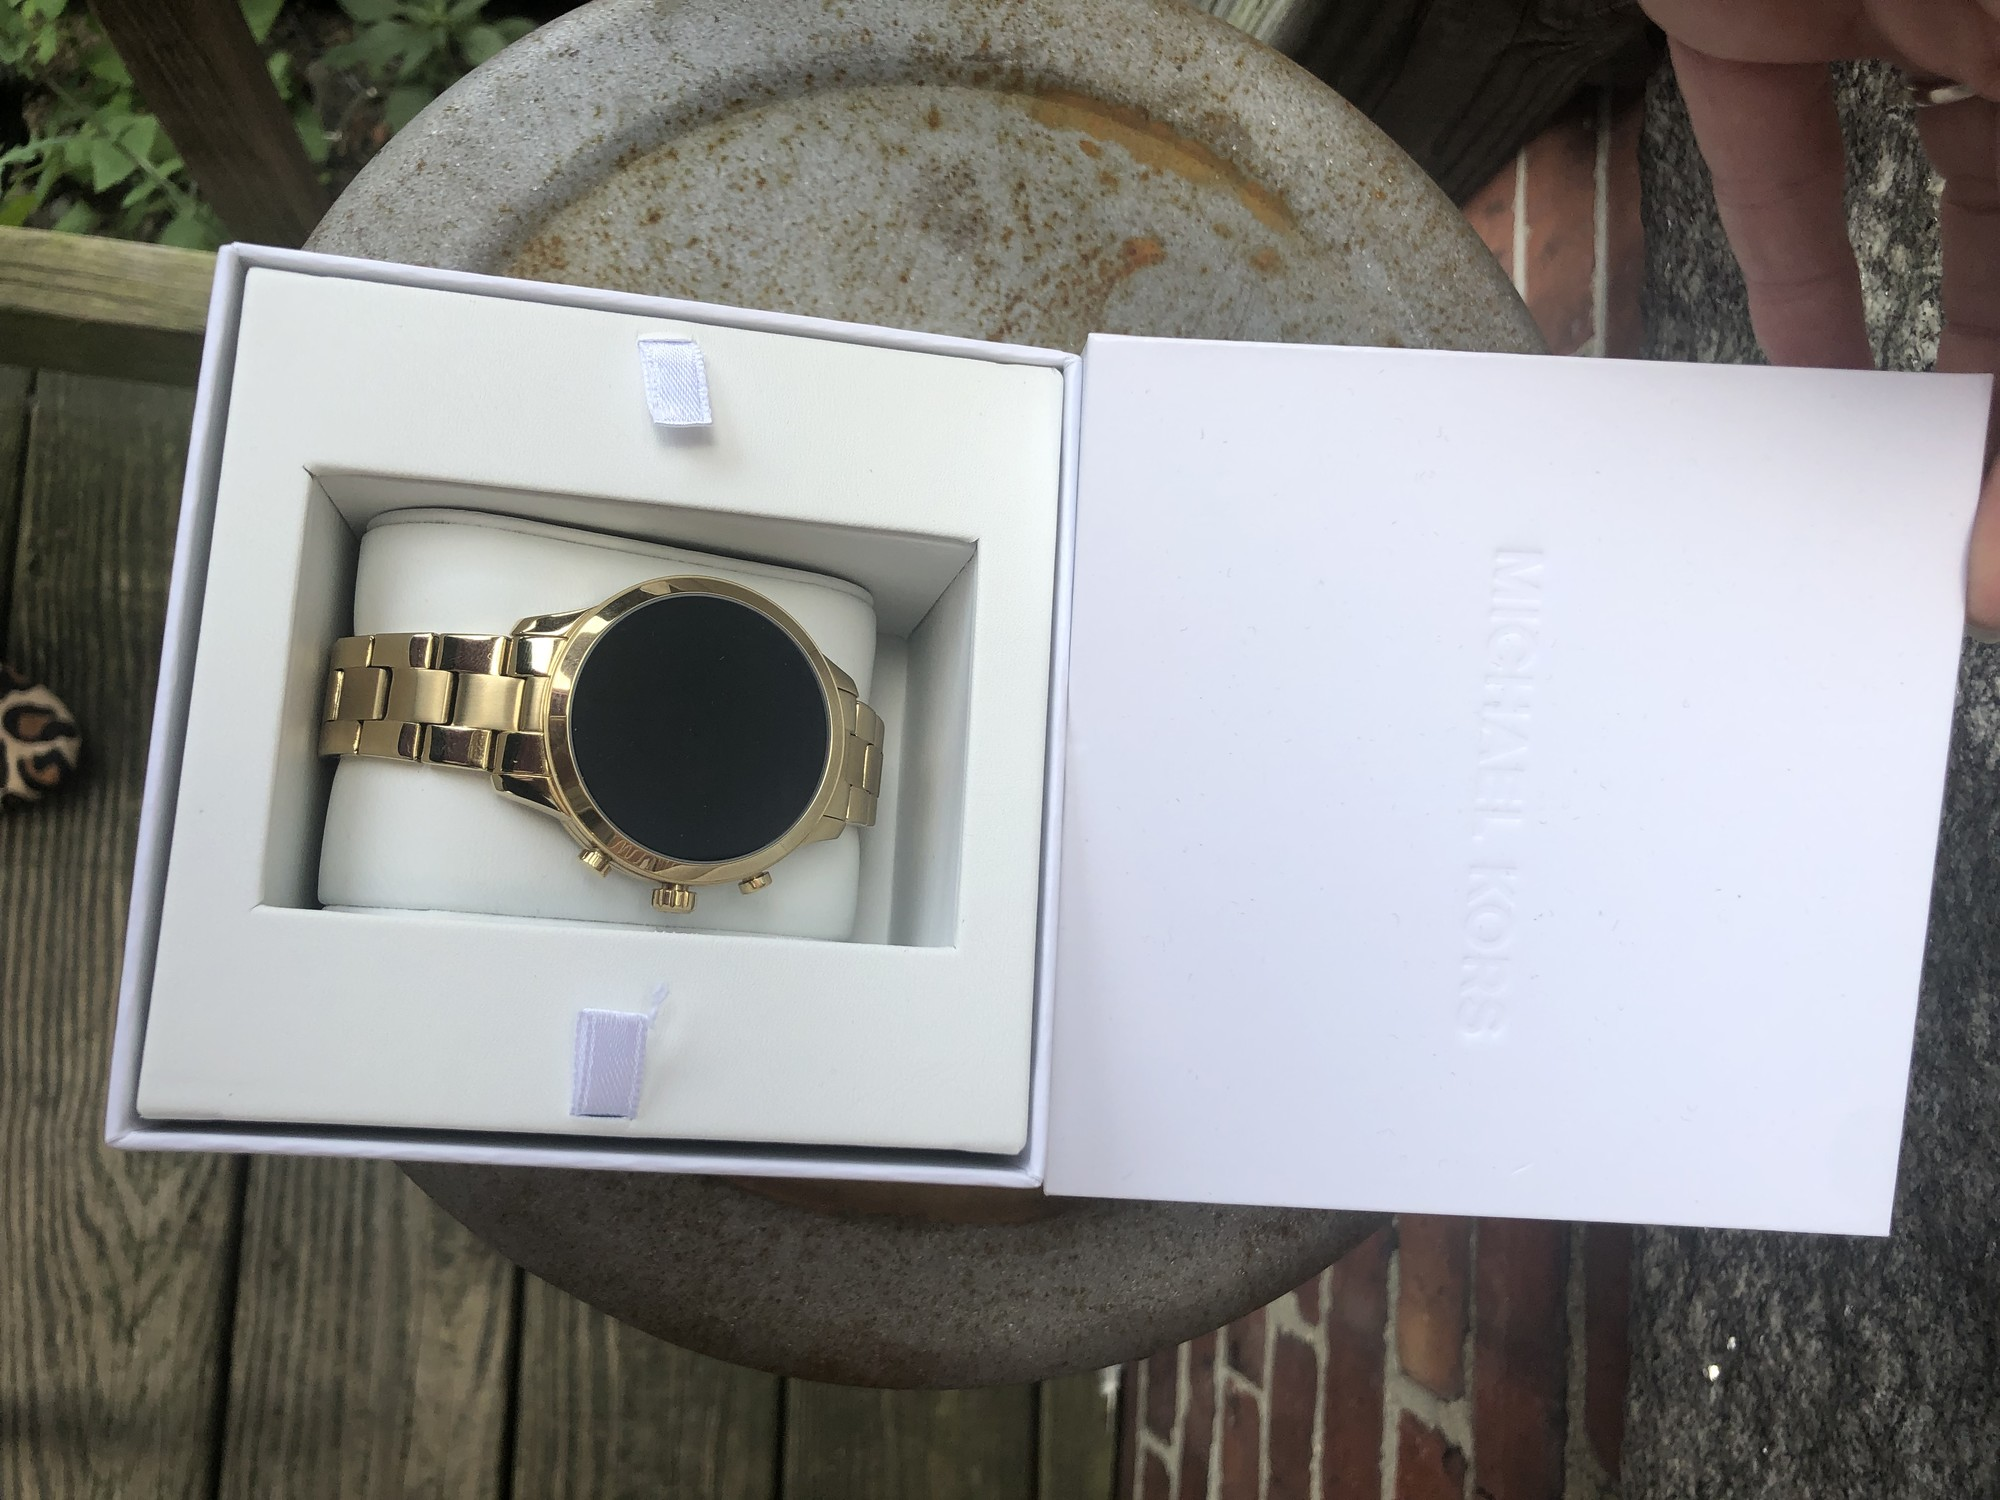 Michael Kors Access NWT, Gold, Size: One Size<br /> Heart Monitor, Rose Gold watch with paperwork and Receiot.